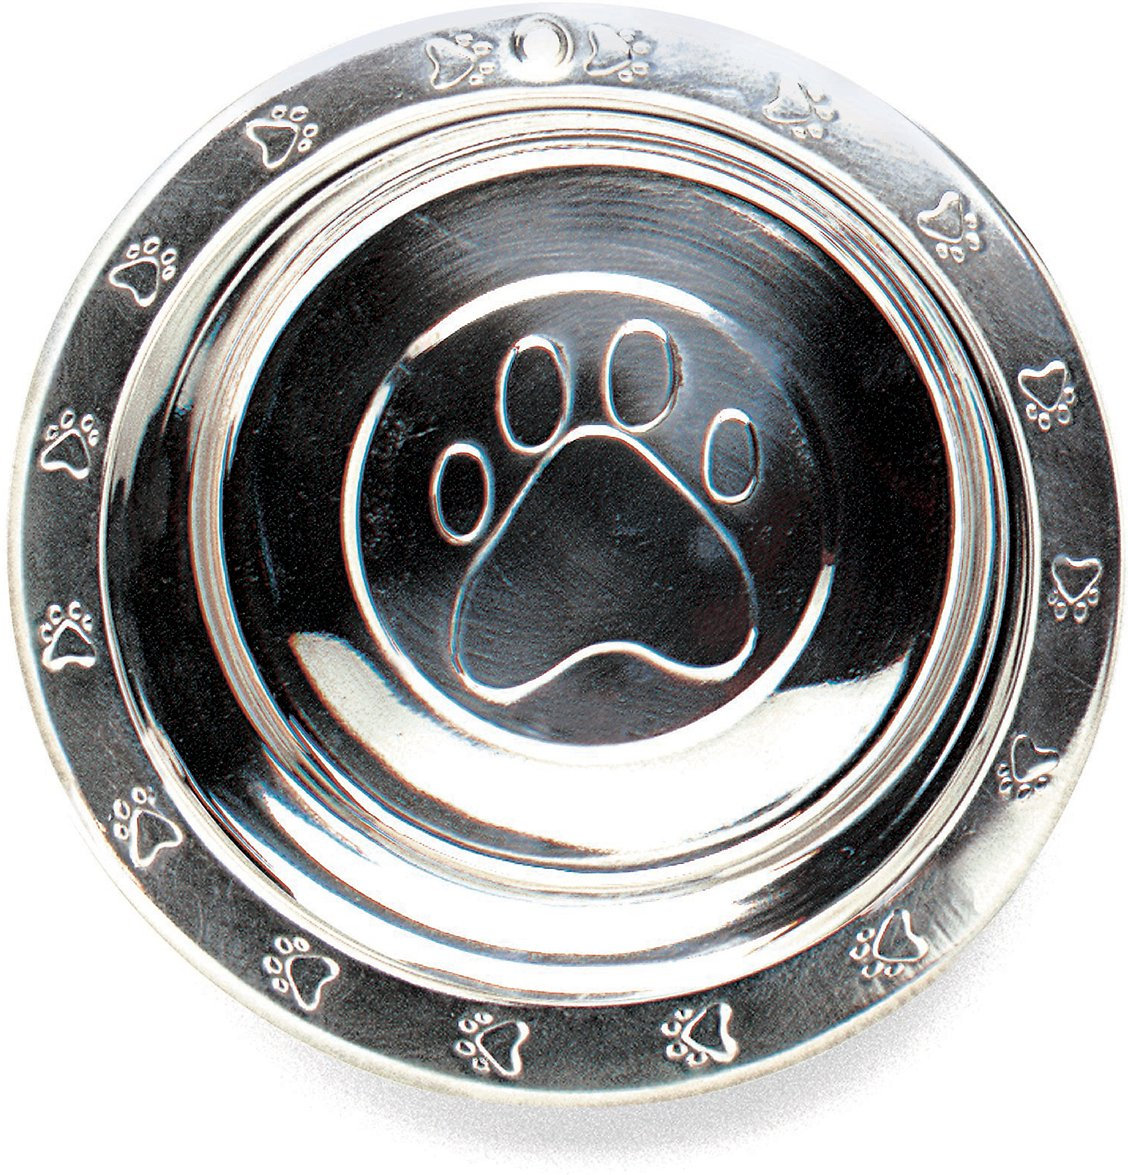 Ethical Pet Stainless Steel 3-D Embossed Dog Bowl, 3-qt